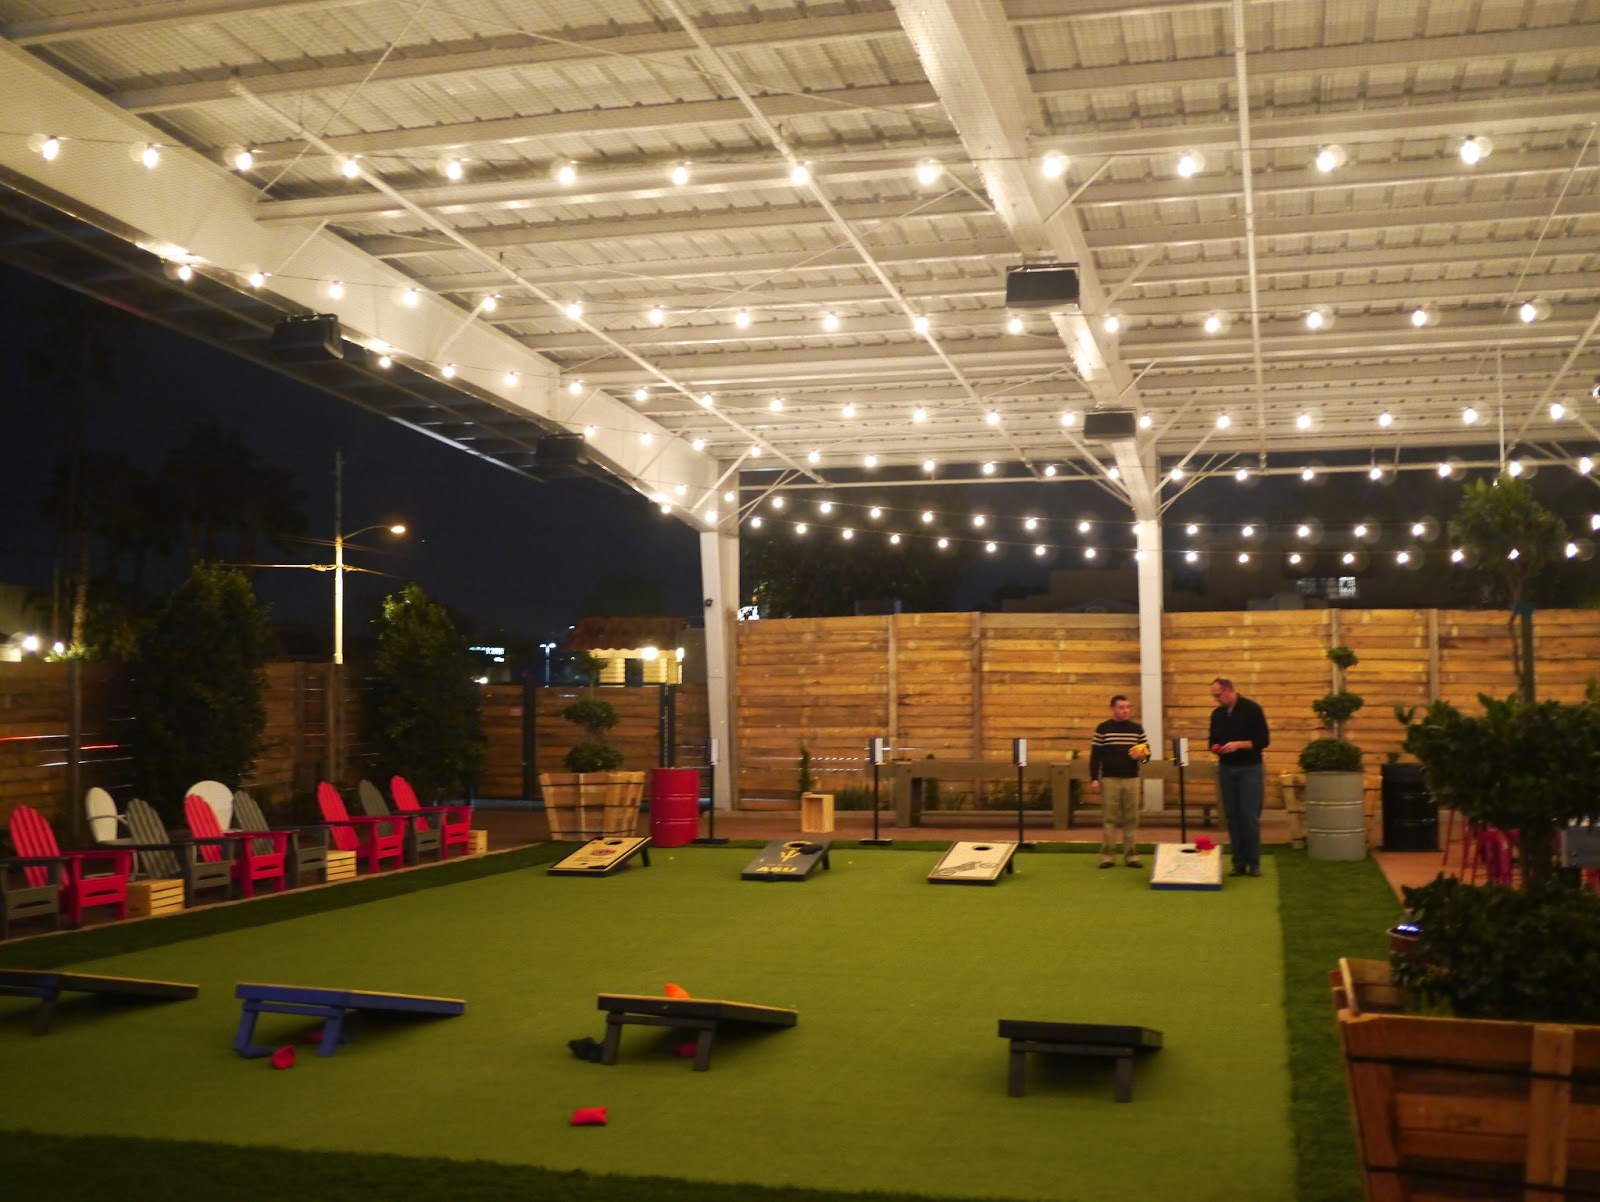 Eat Drink Amp Play At Phoenix S Newest Hangout The Yard